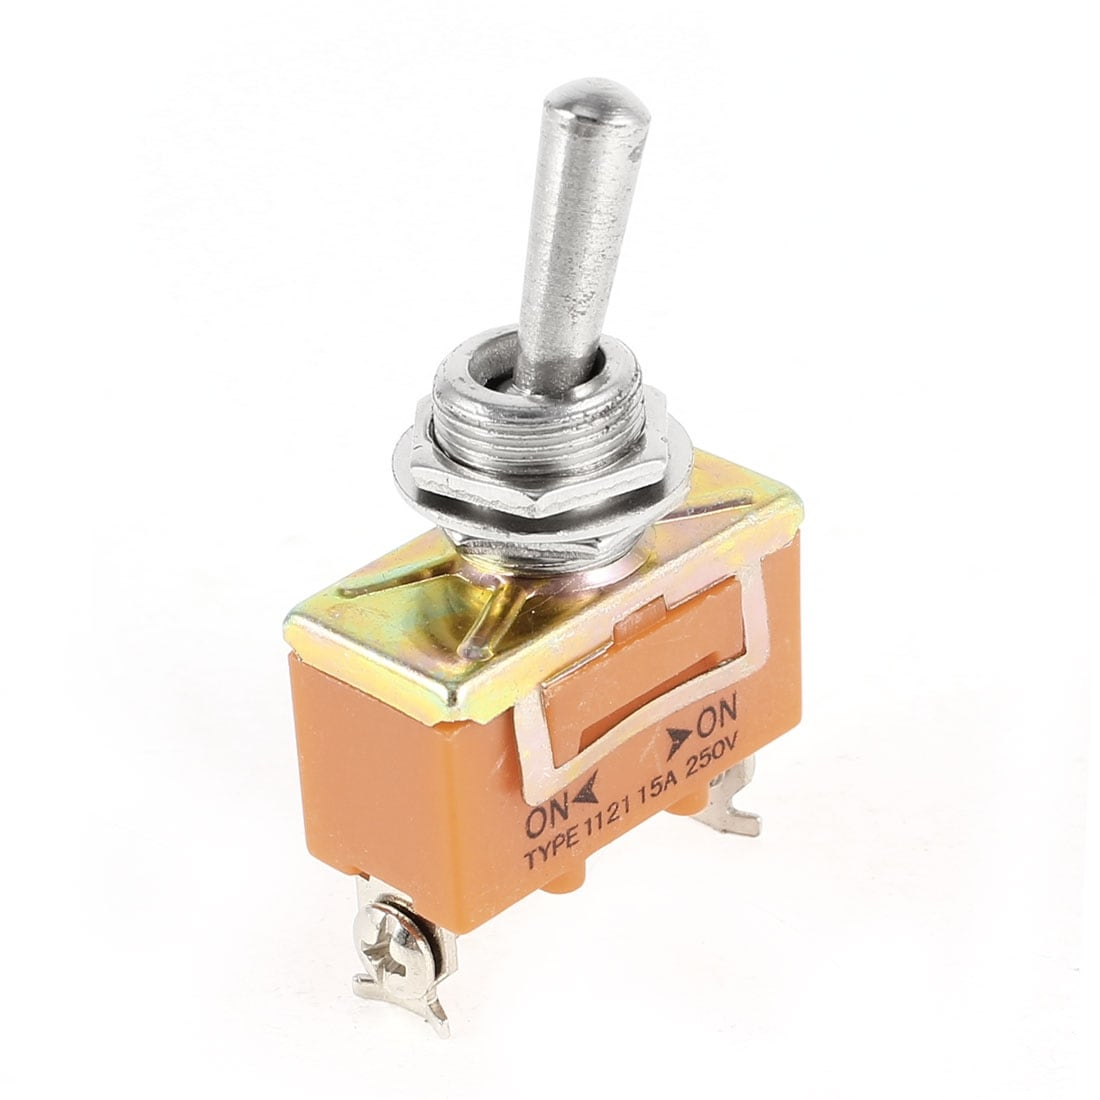 5x DPDT ON//ON 2 Positions 6 Screw Terminal Toggle Switch AC 250V 15A New